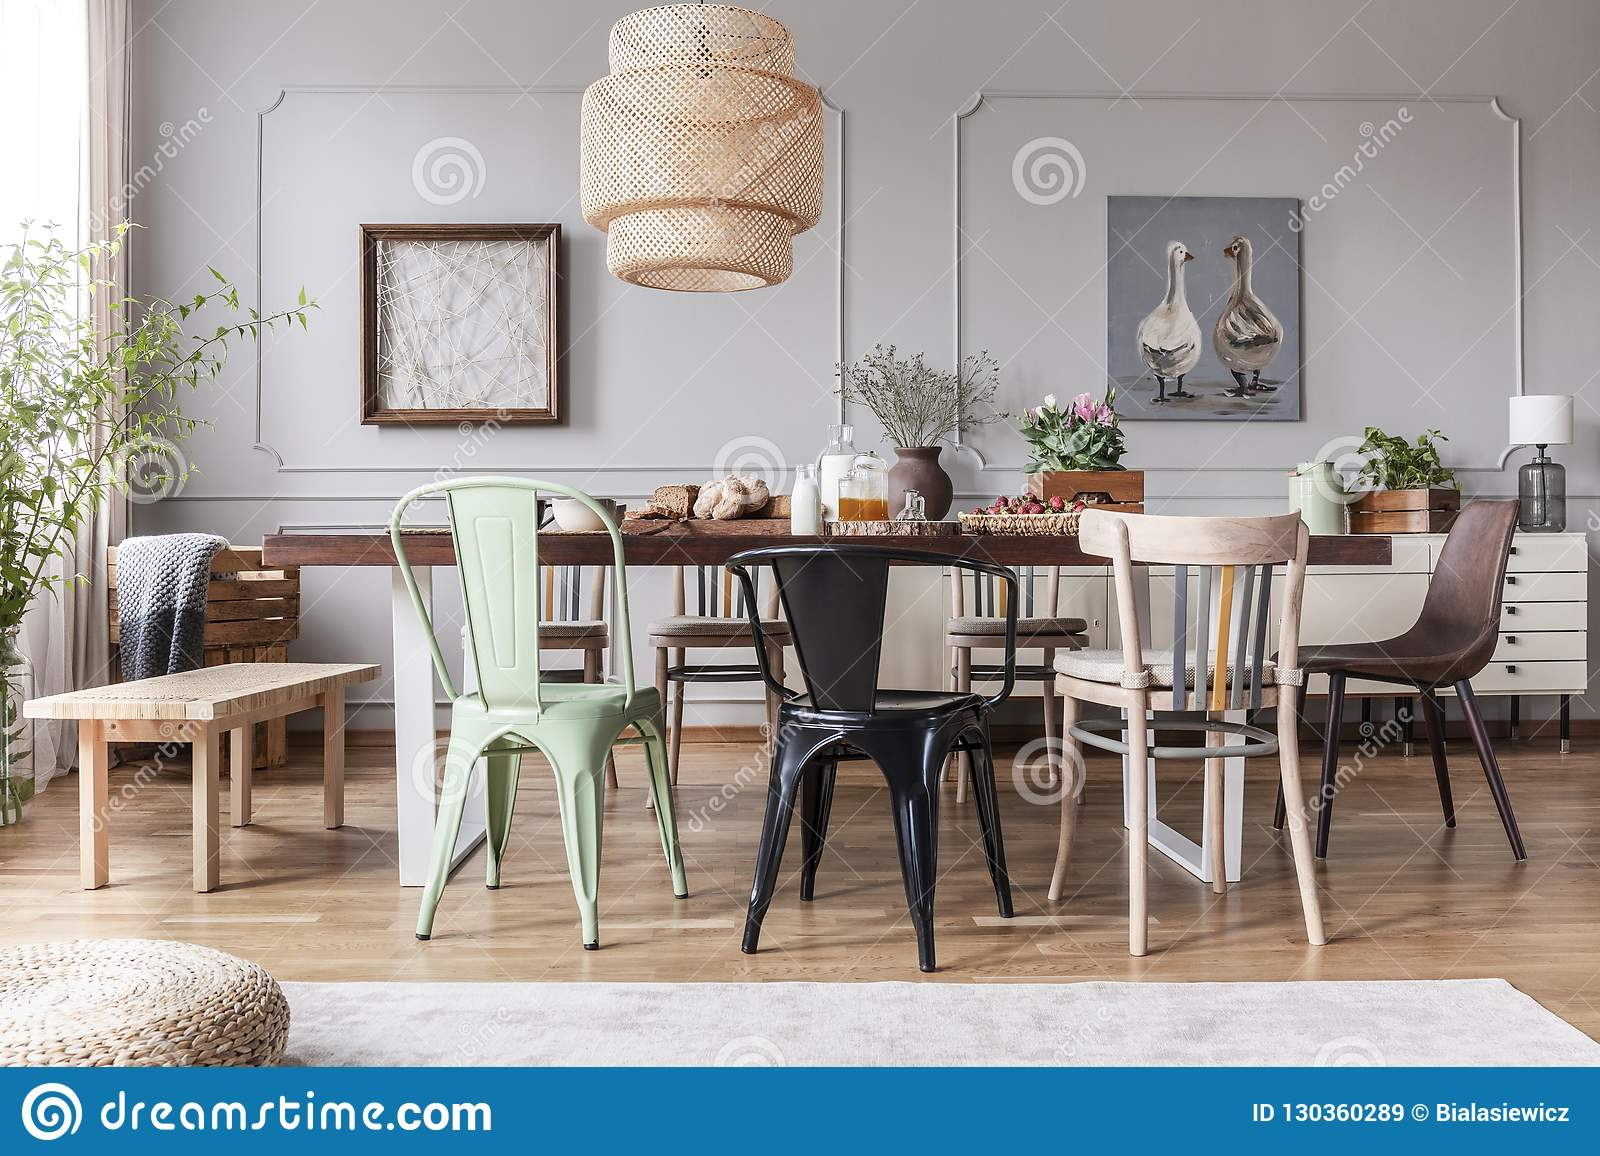 Different kid of chairs at table with flowers and food in rustic dining room interior with lamp and posters. Real photo